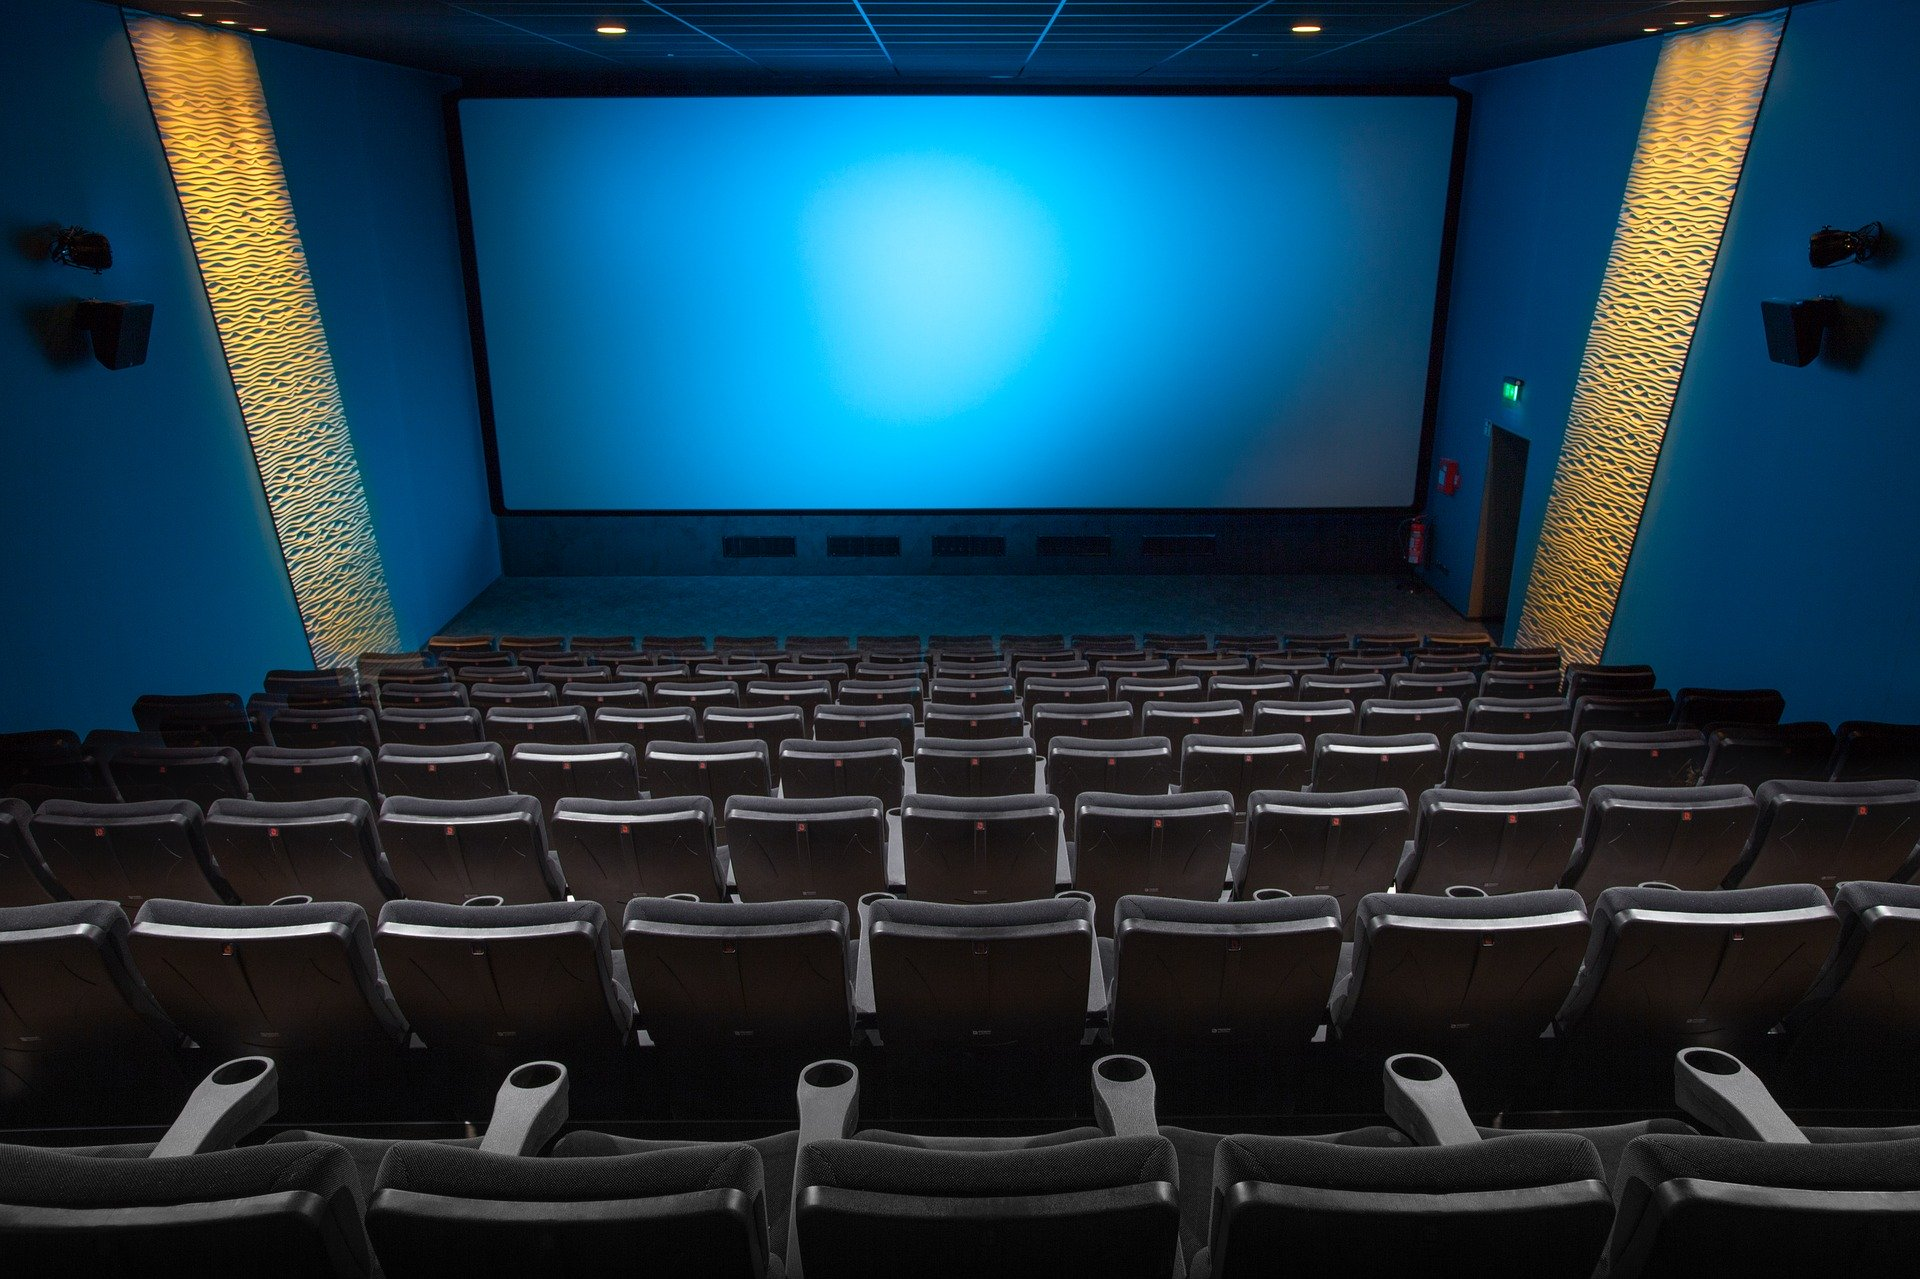 A small movie theater lit in blue with bold panels on the side walls | gtg